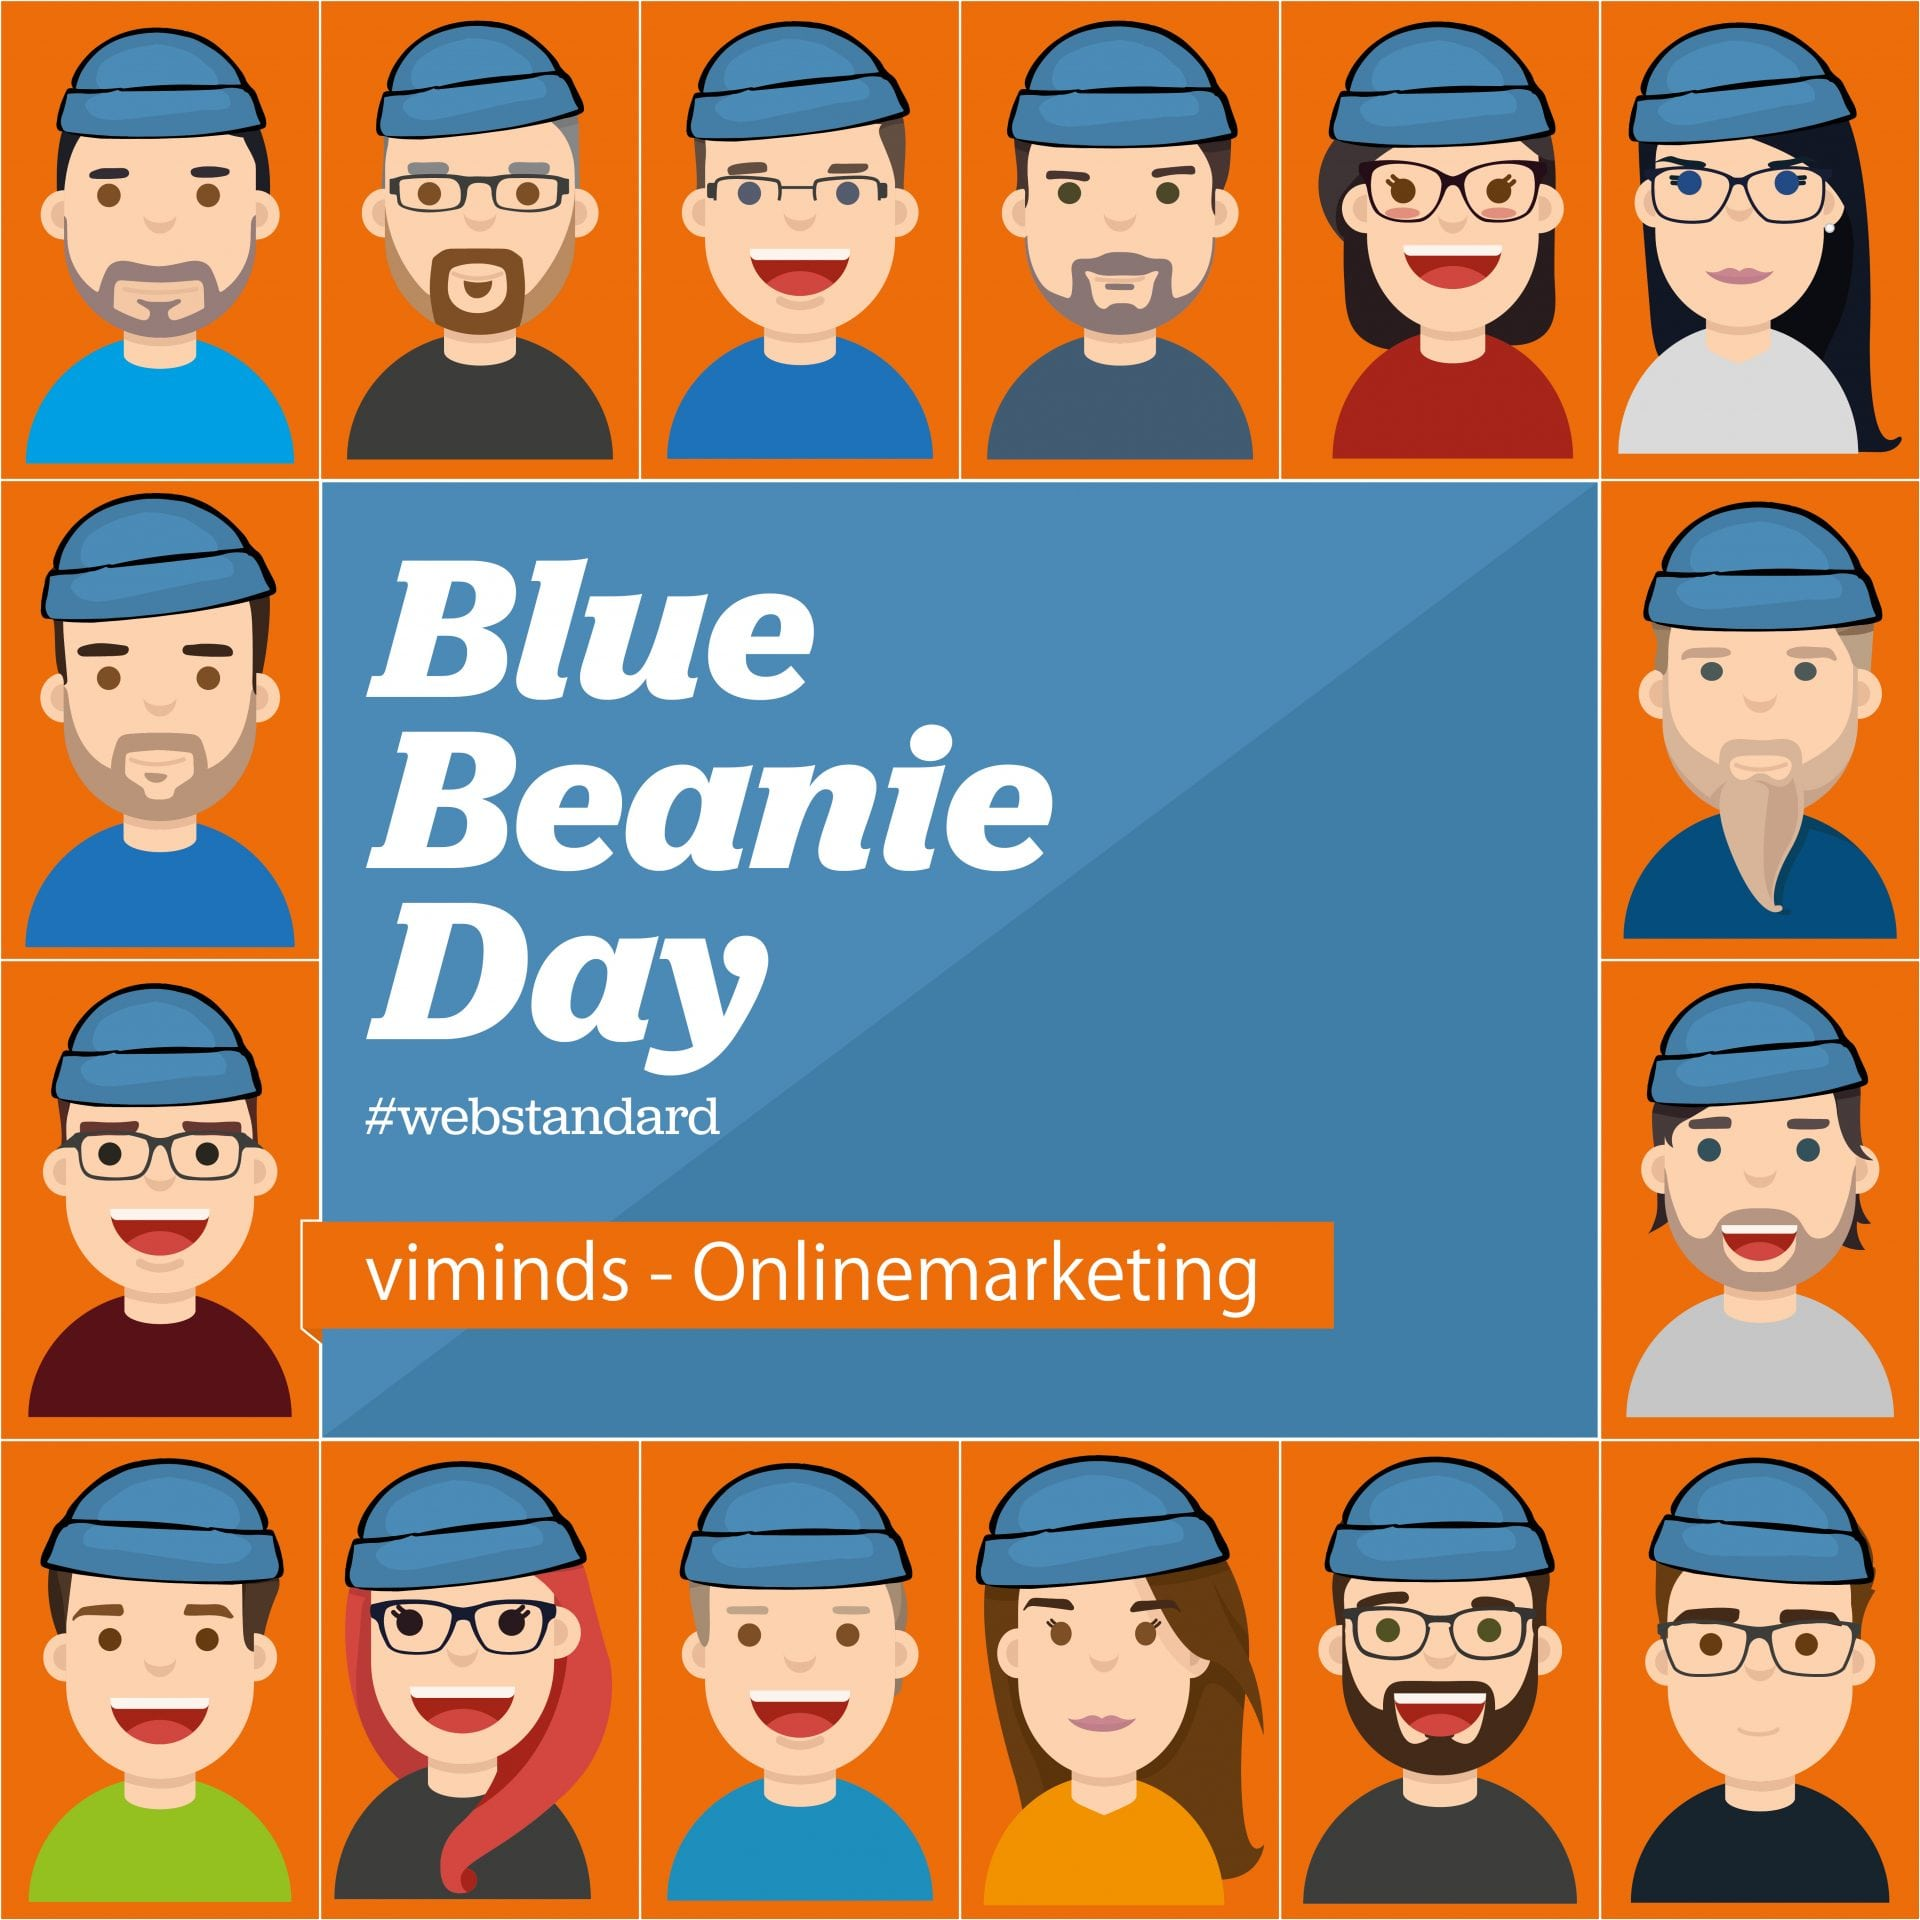 Social Media Blue Beanie Day viminds